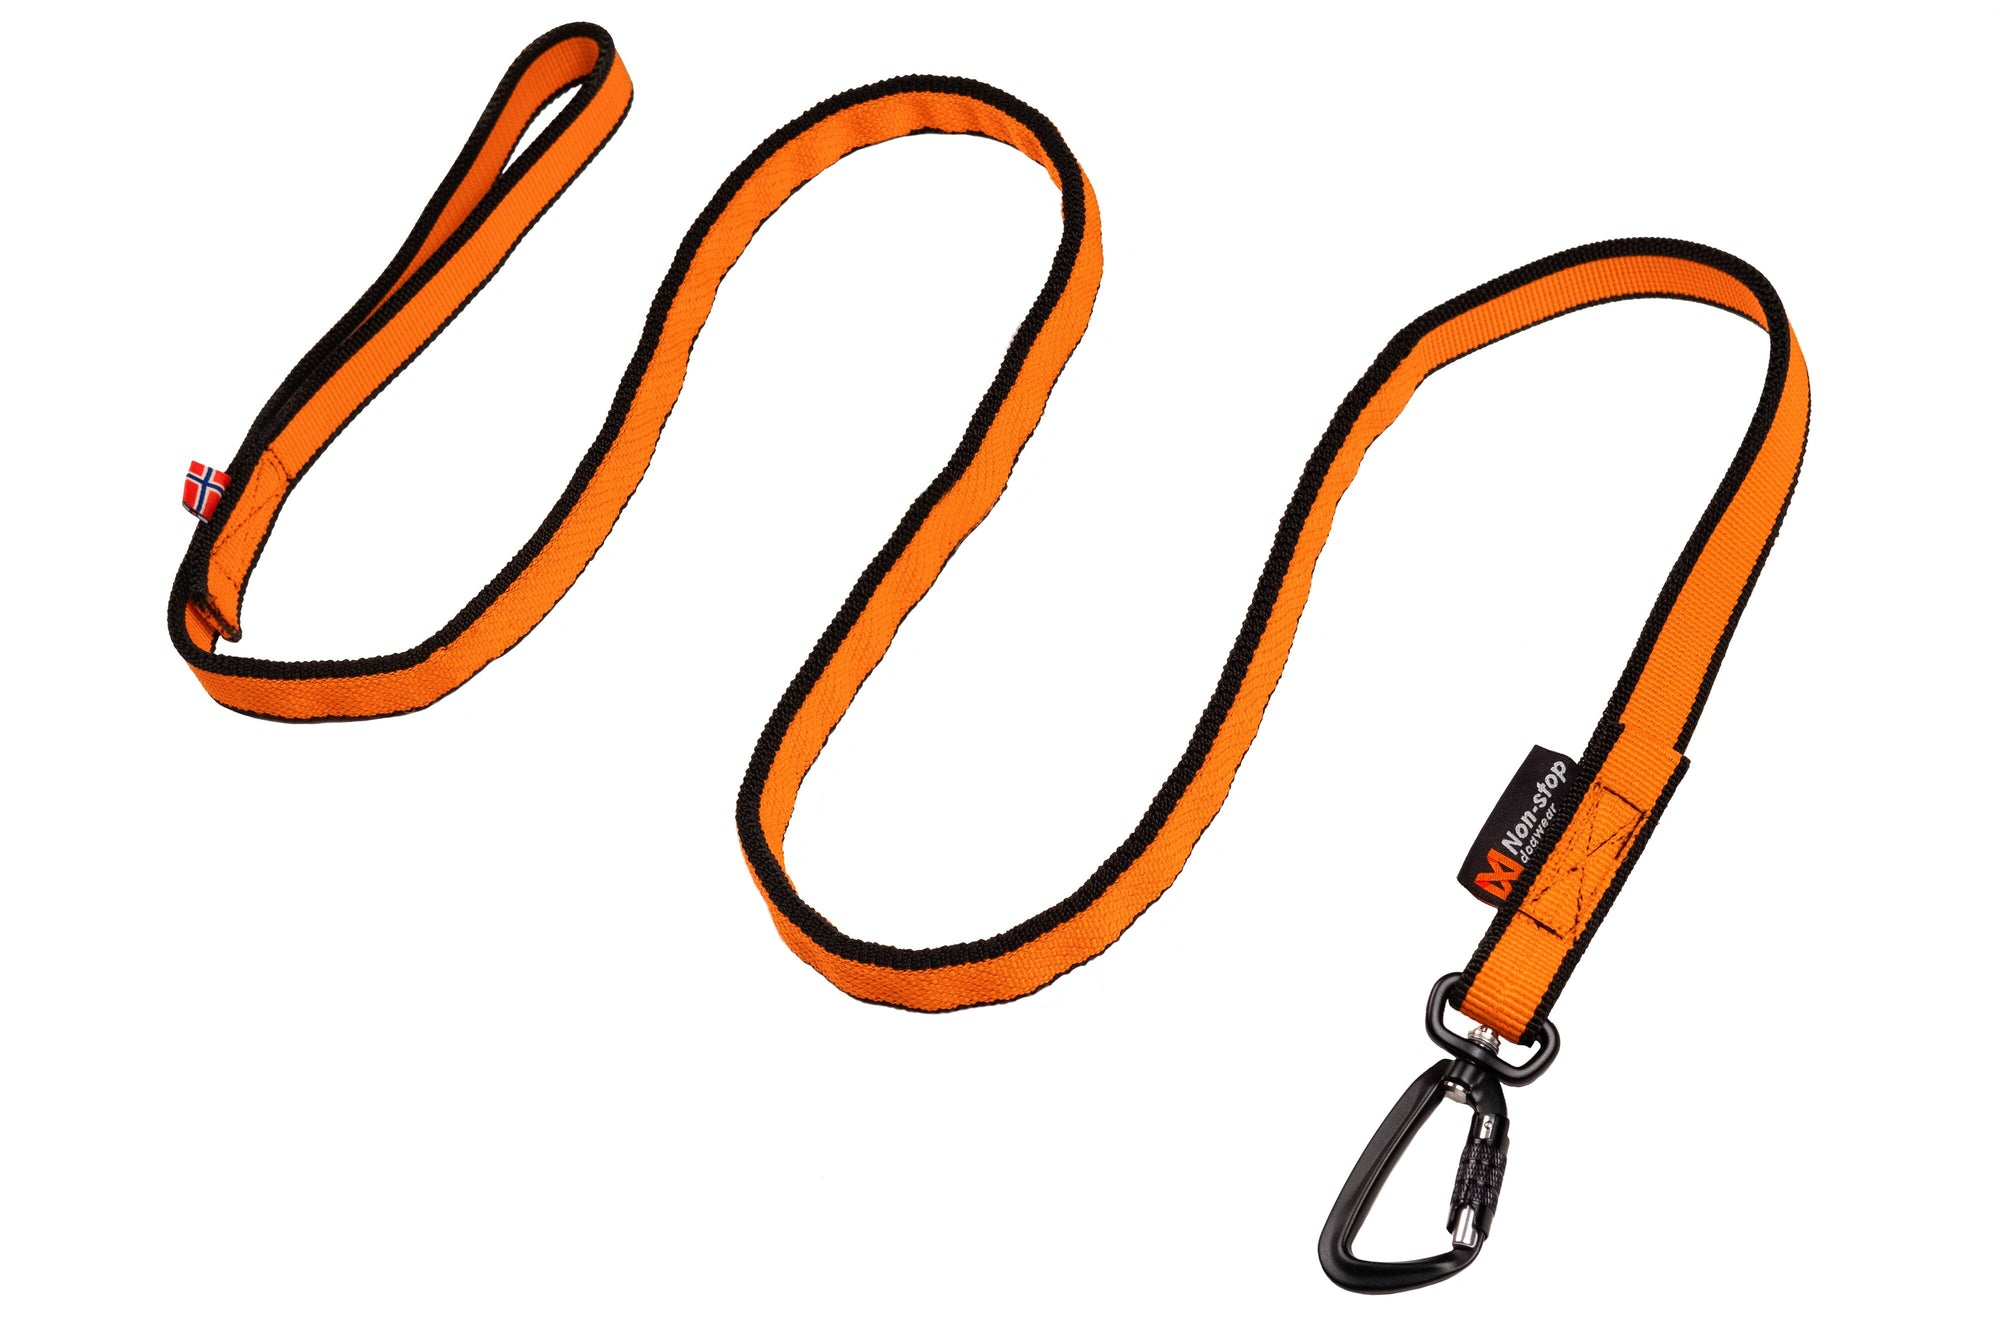 Sportleine Bungee Leash